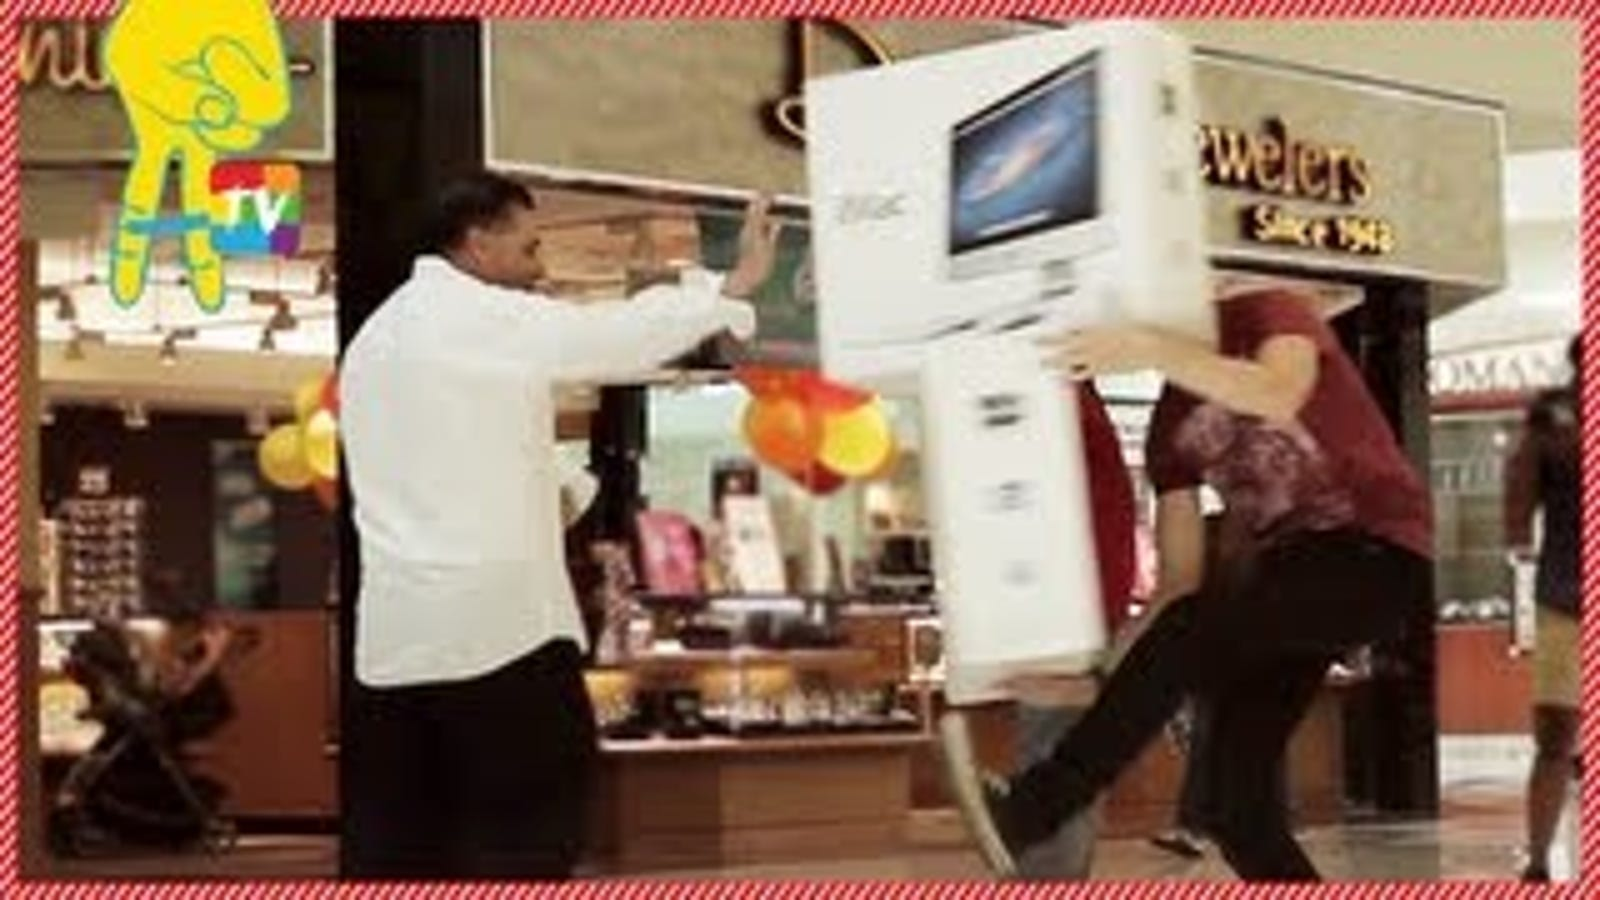 Watch a Prankster 'Accidentally' Break His iMac in Front of People